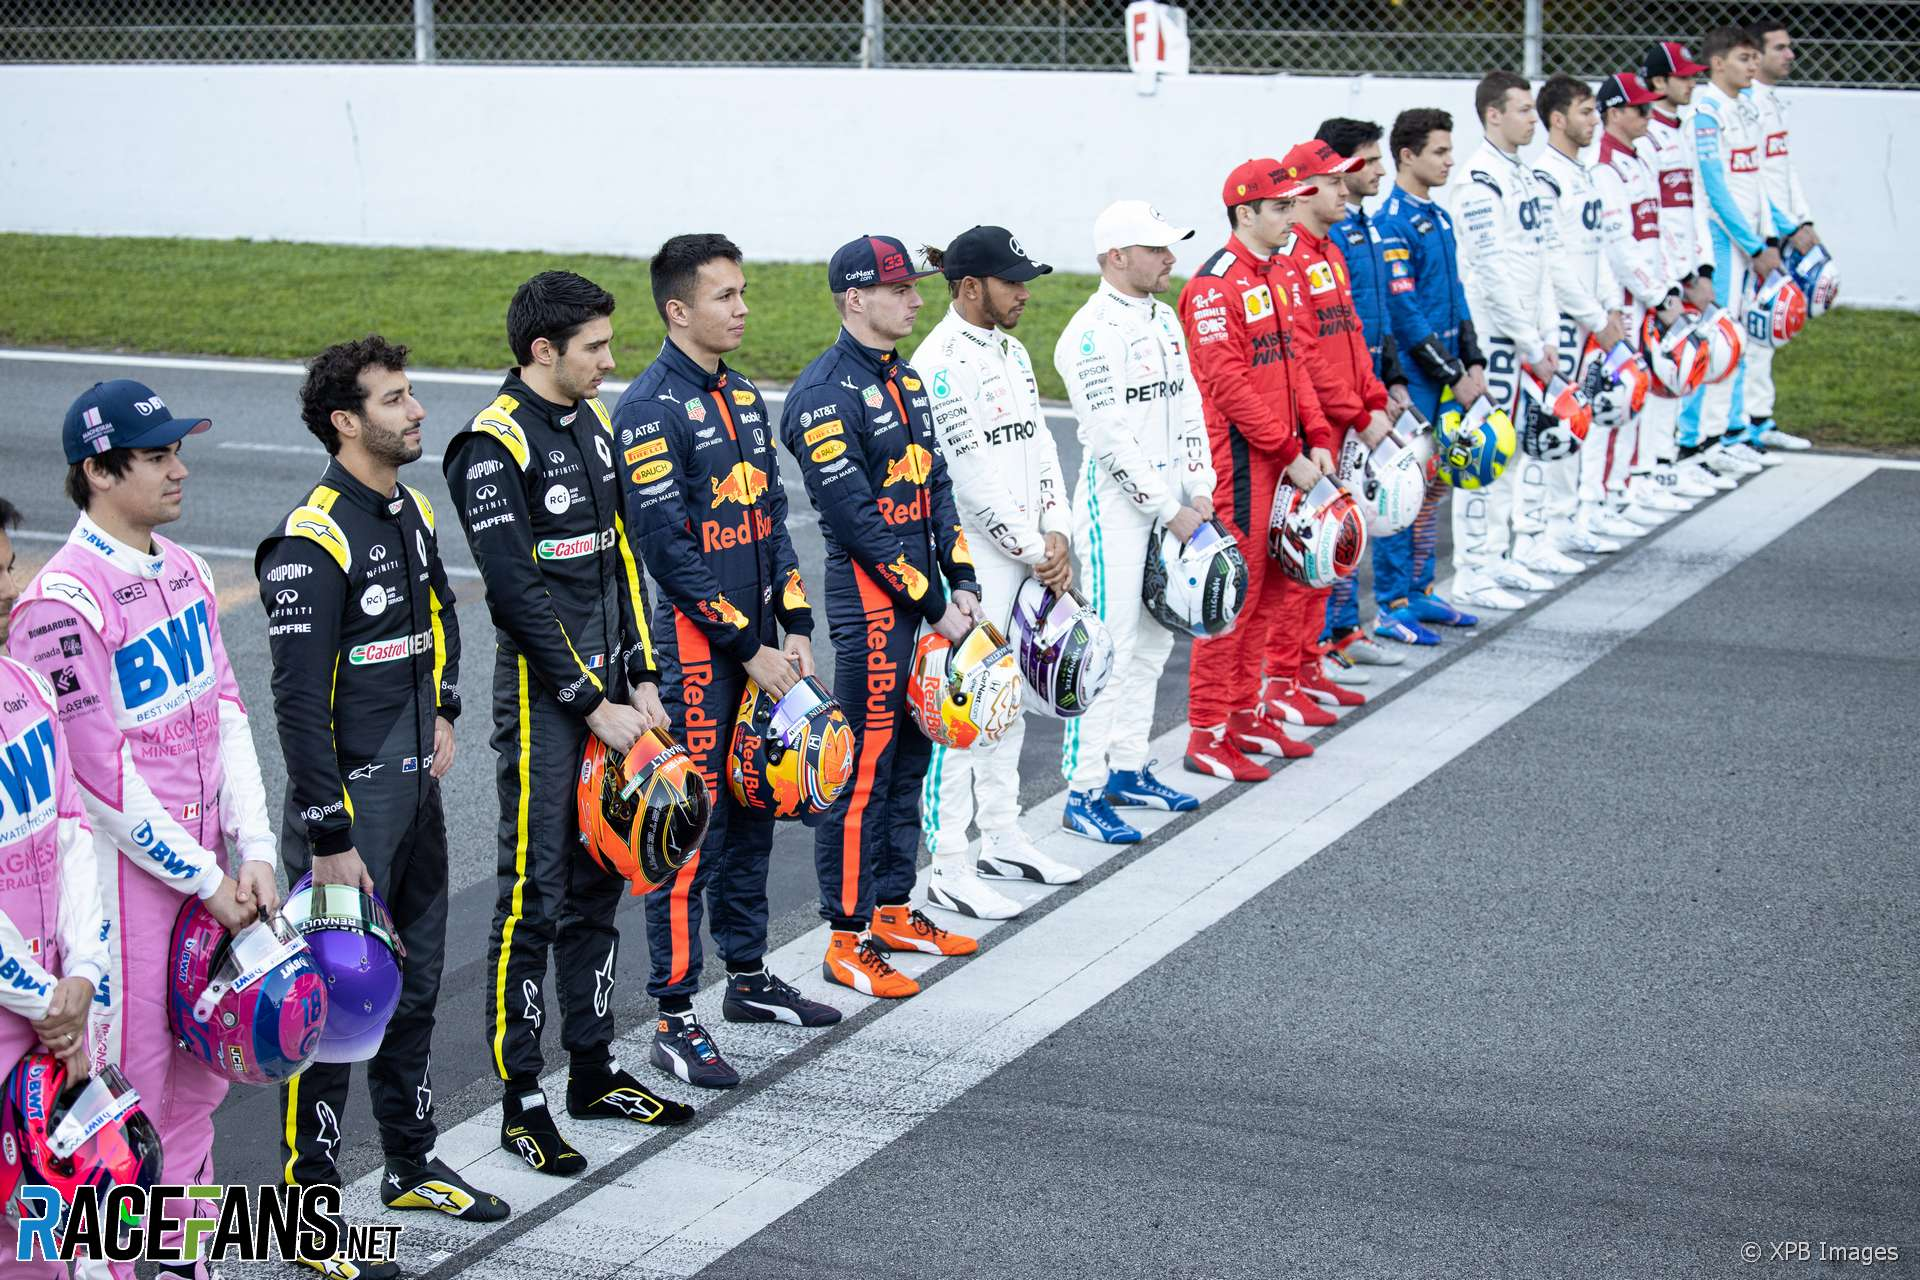 2021 F1 Drivers And Teams Racefans